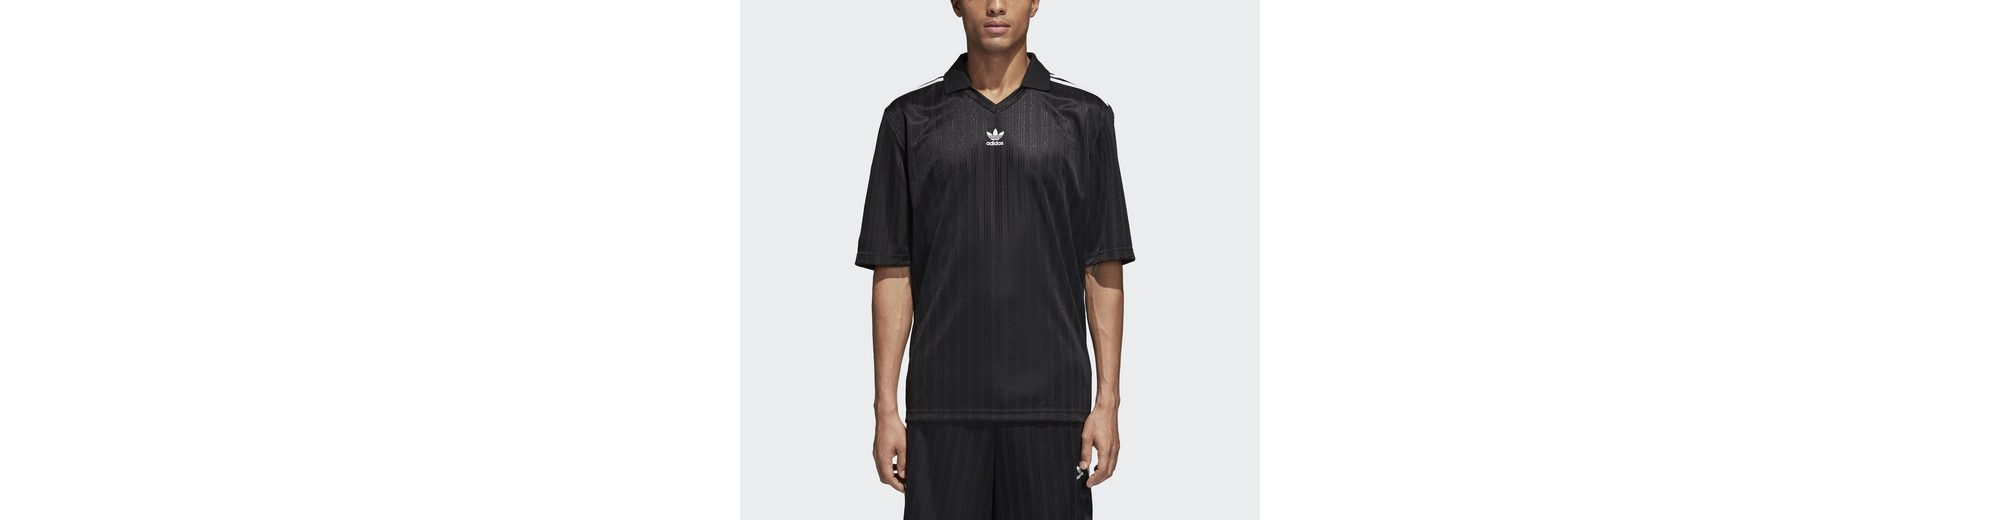 adidas Originals Sporttop Football Shirt